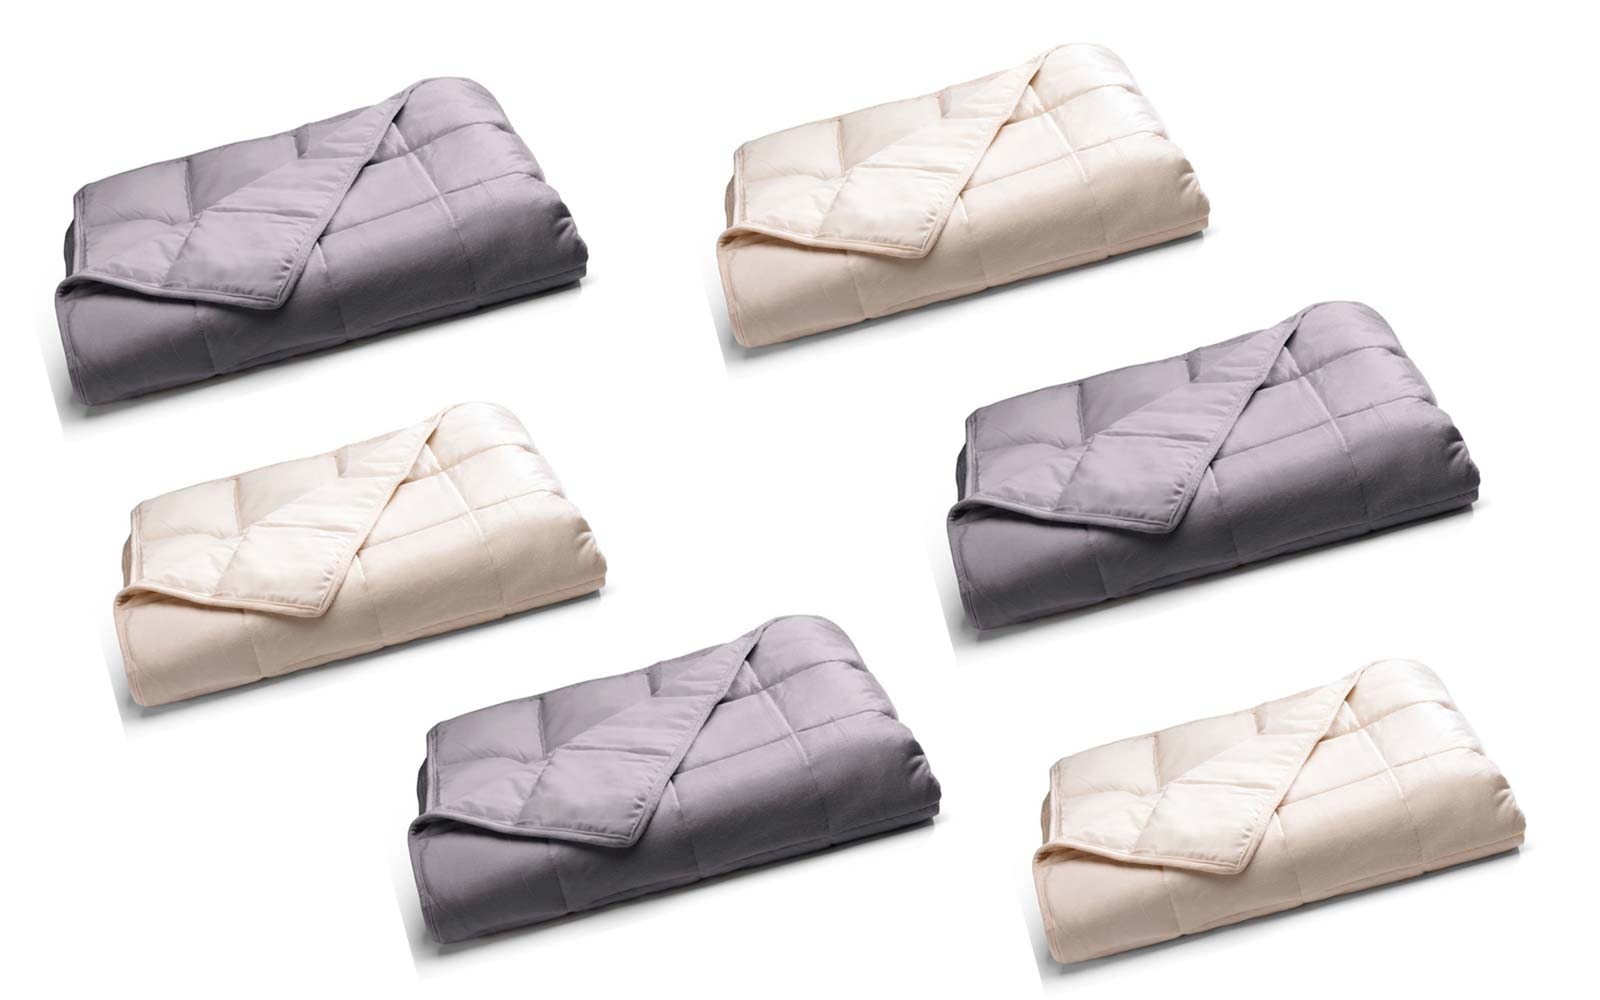 12lb Weighted Throw Blanket - Tranquility